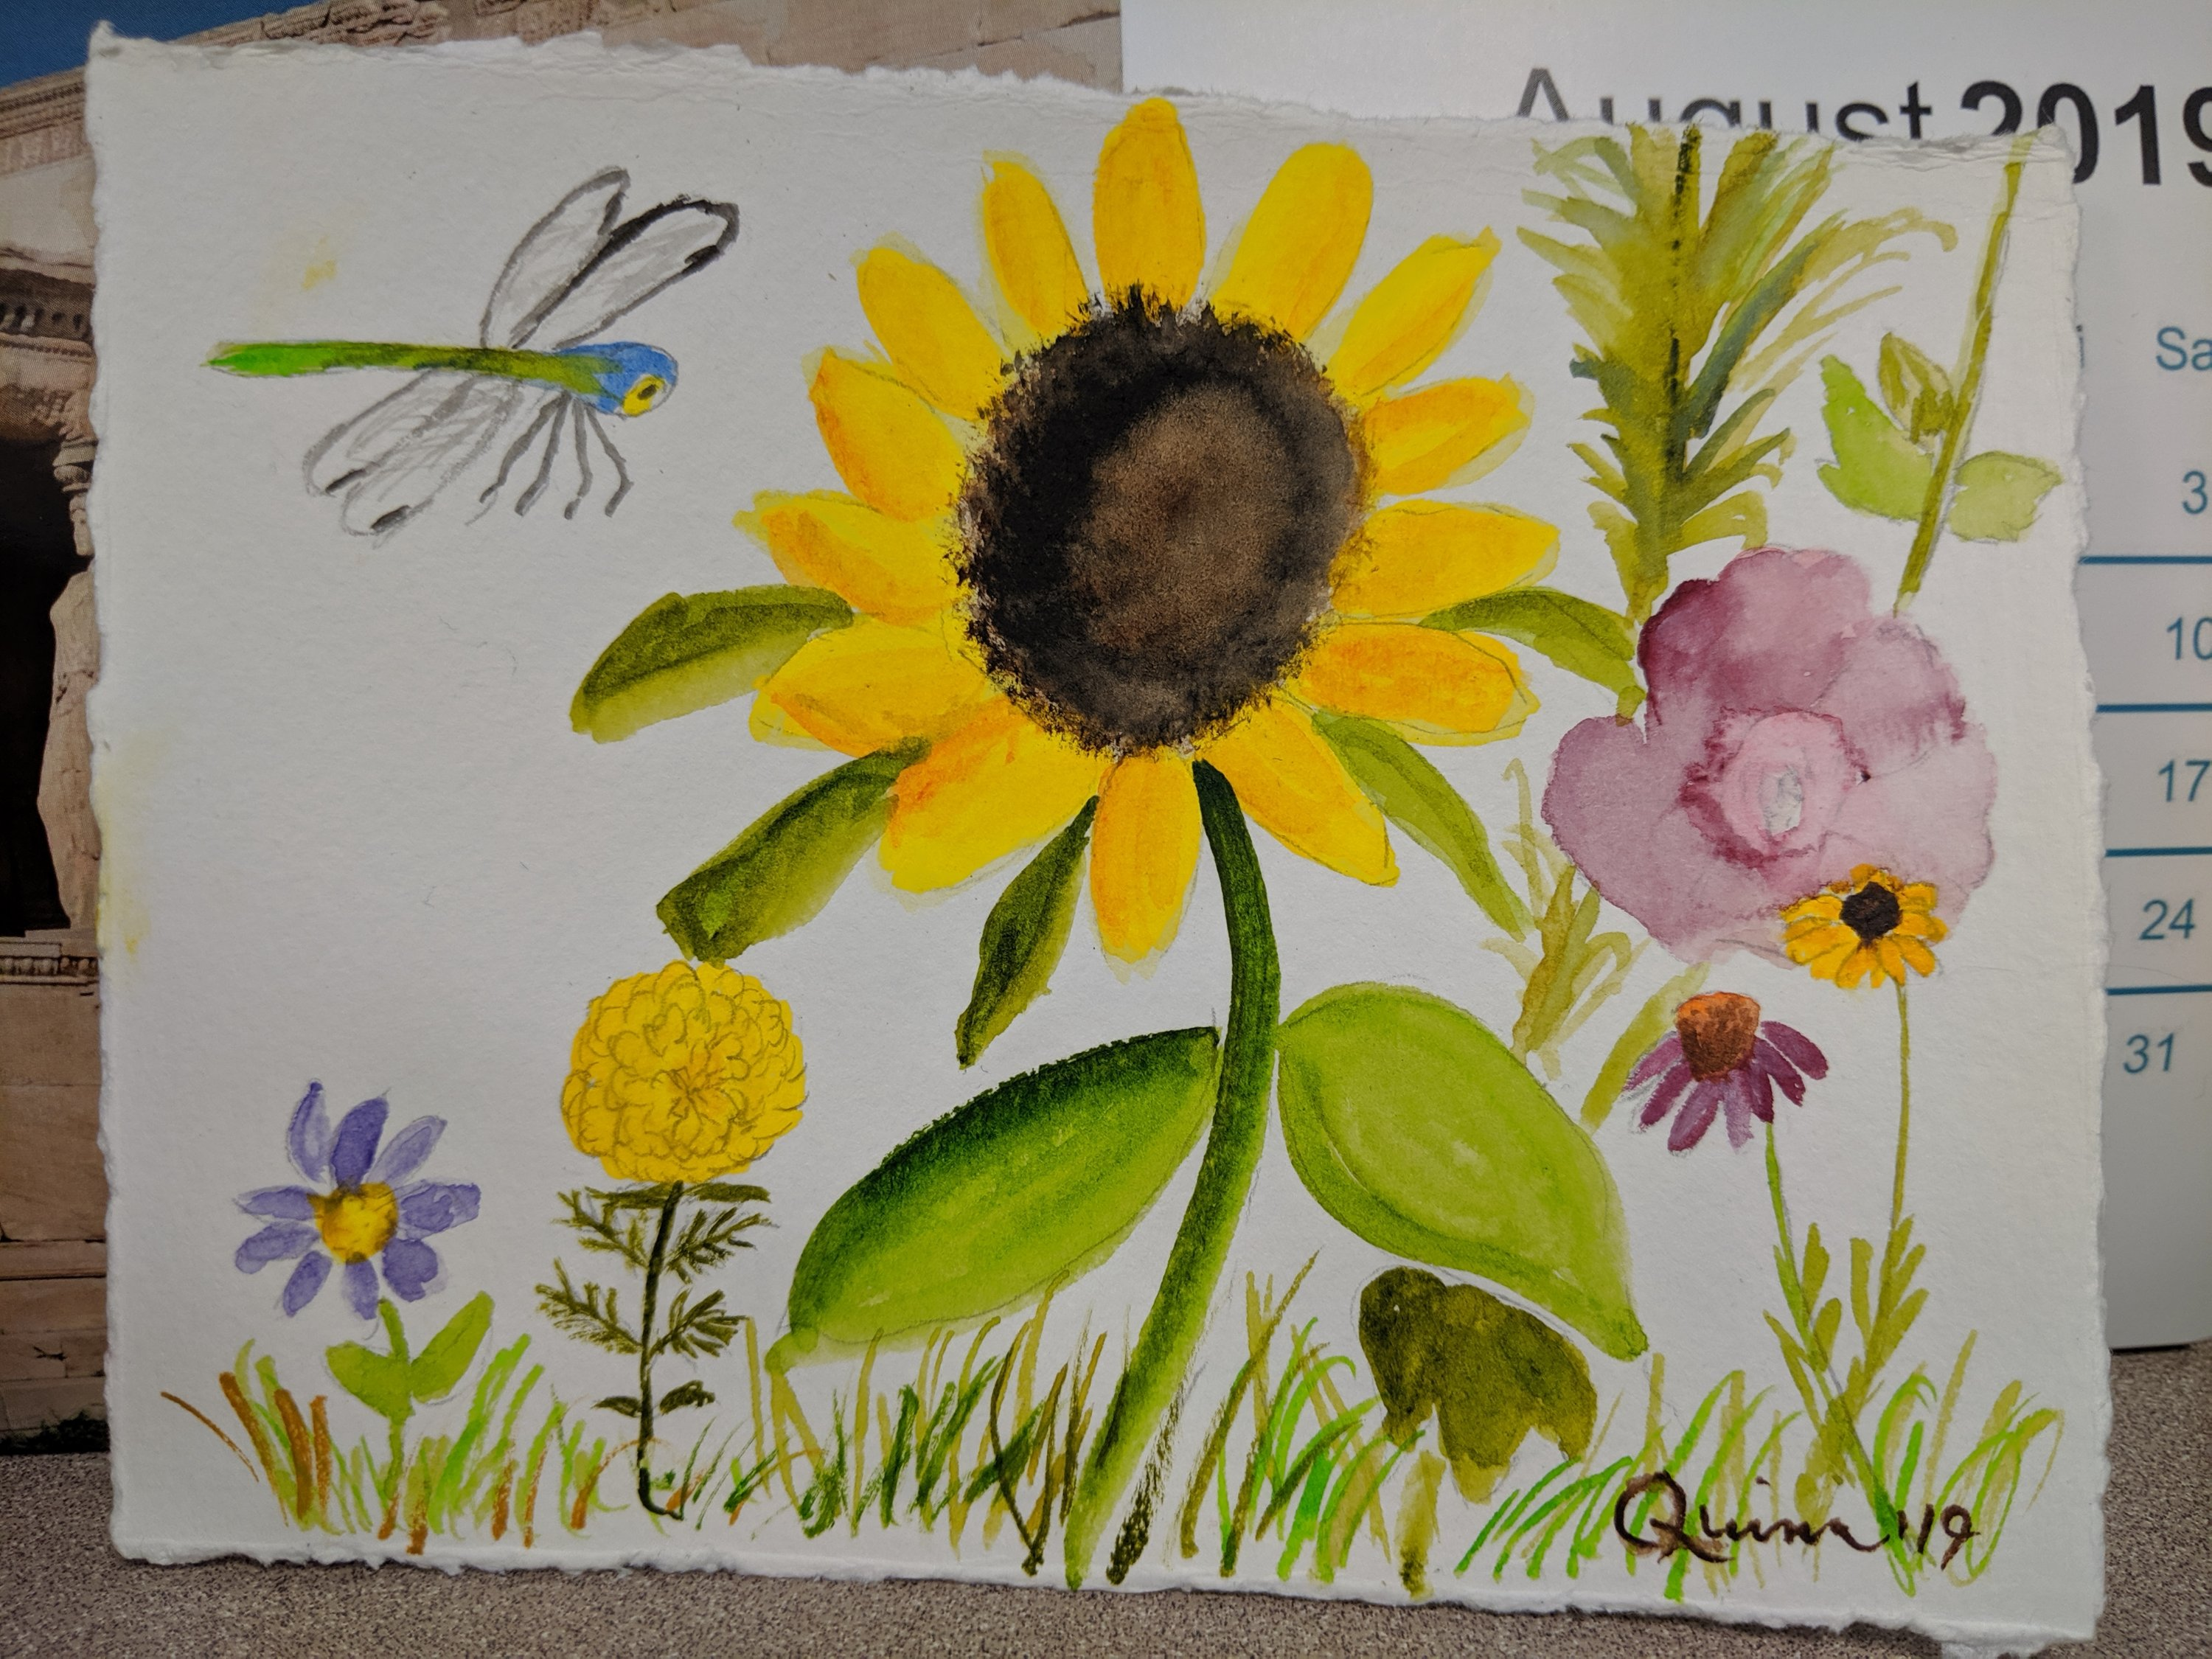 Watercolour painting flowers and Dragonfly